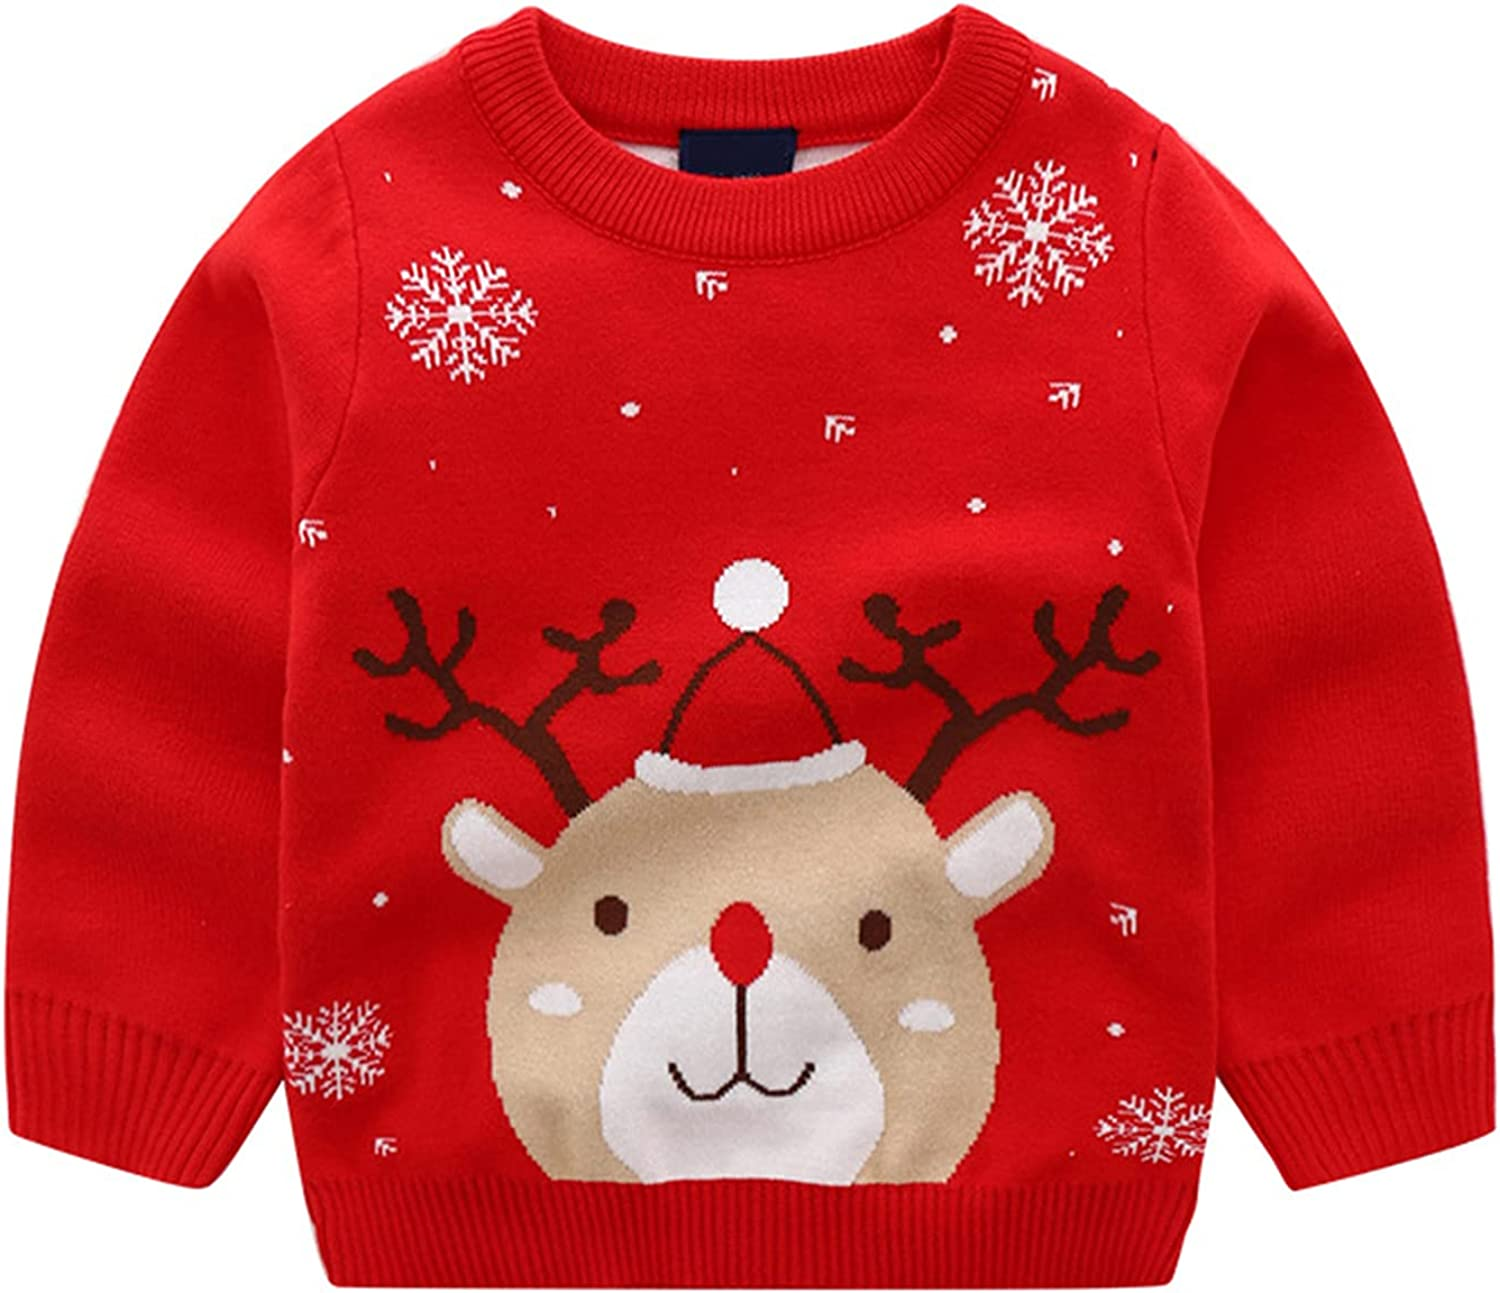 Baby Boys Girls Knit Sweater Toddler Dinosaur Christmas Sweatshirt Cotton Pullover Coat Winter Tops Clothes